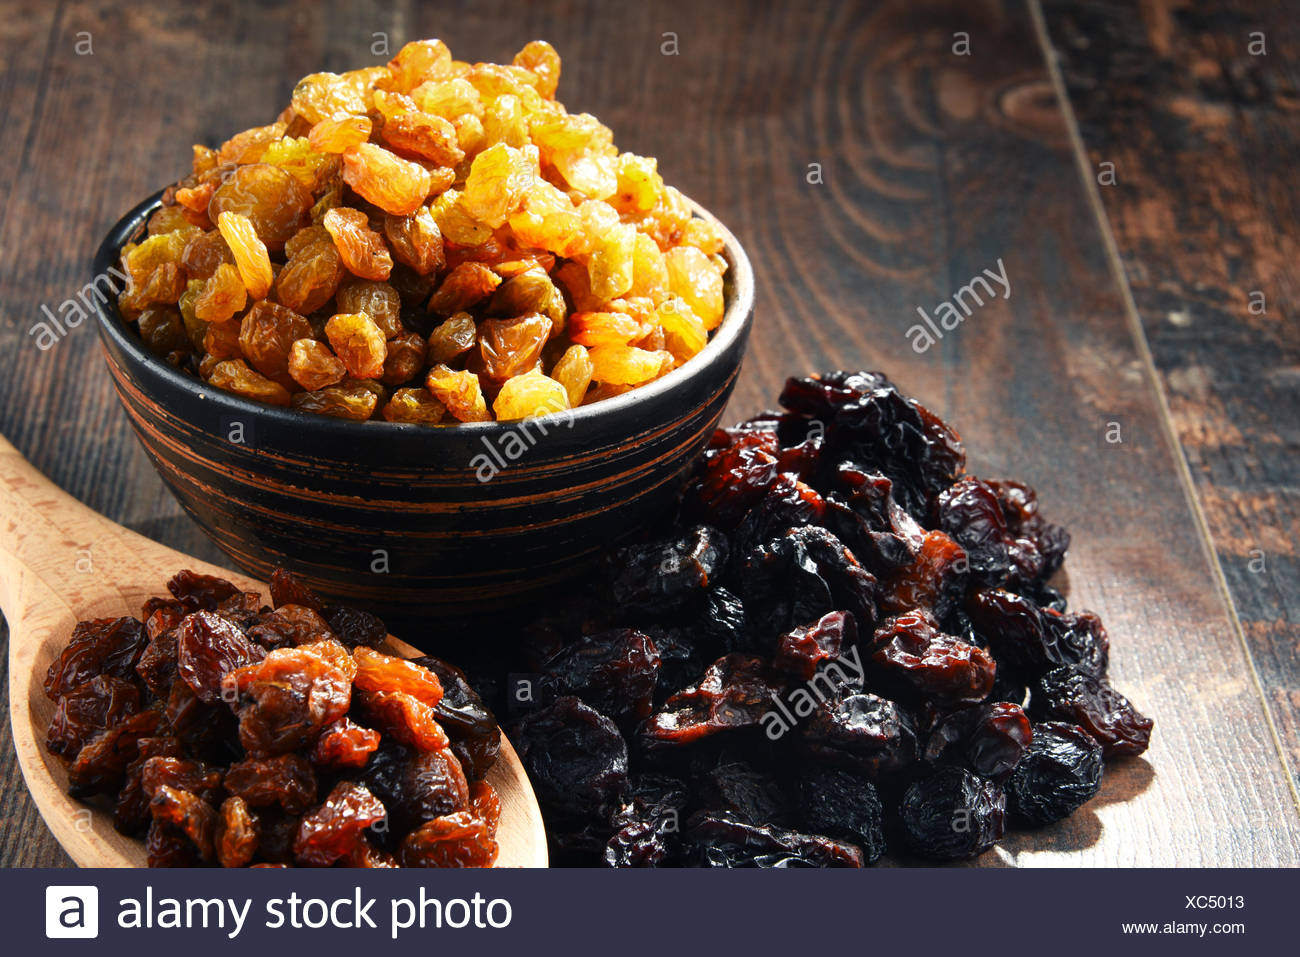 Composition with bowl of raisins on wooden table - Stock Image